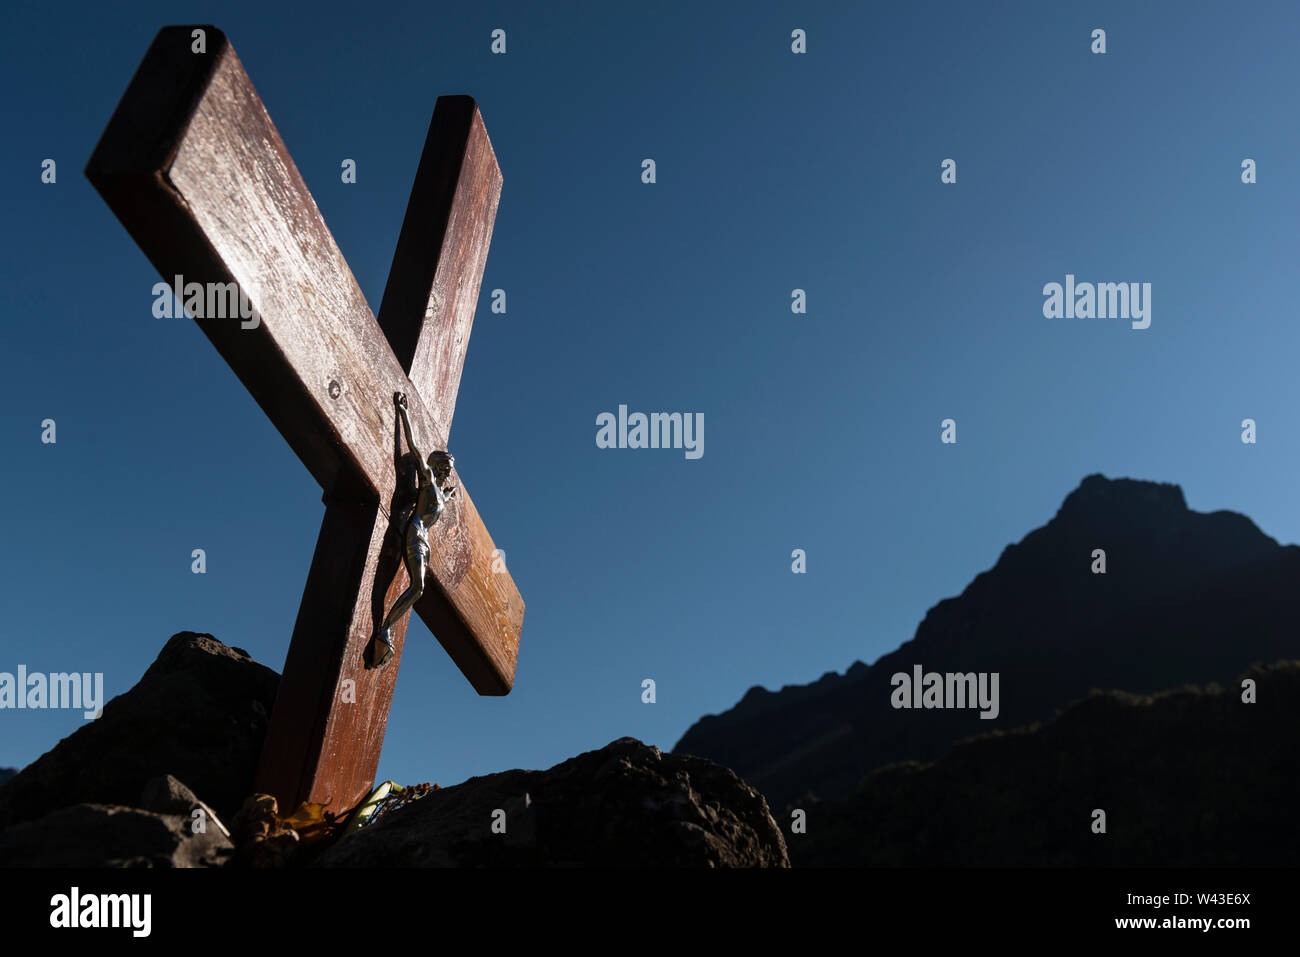 A large wooden crucifix outside the Catholic church, Marla village, early morning light. In background, caldera slopes of Cirque de Mafate, La Reunion Stock Photo